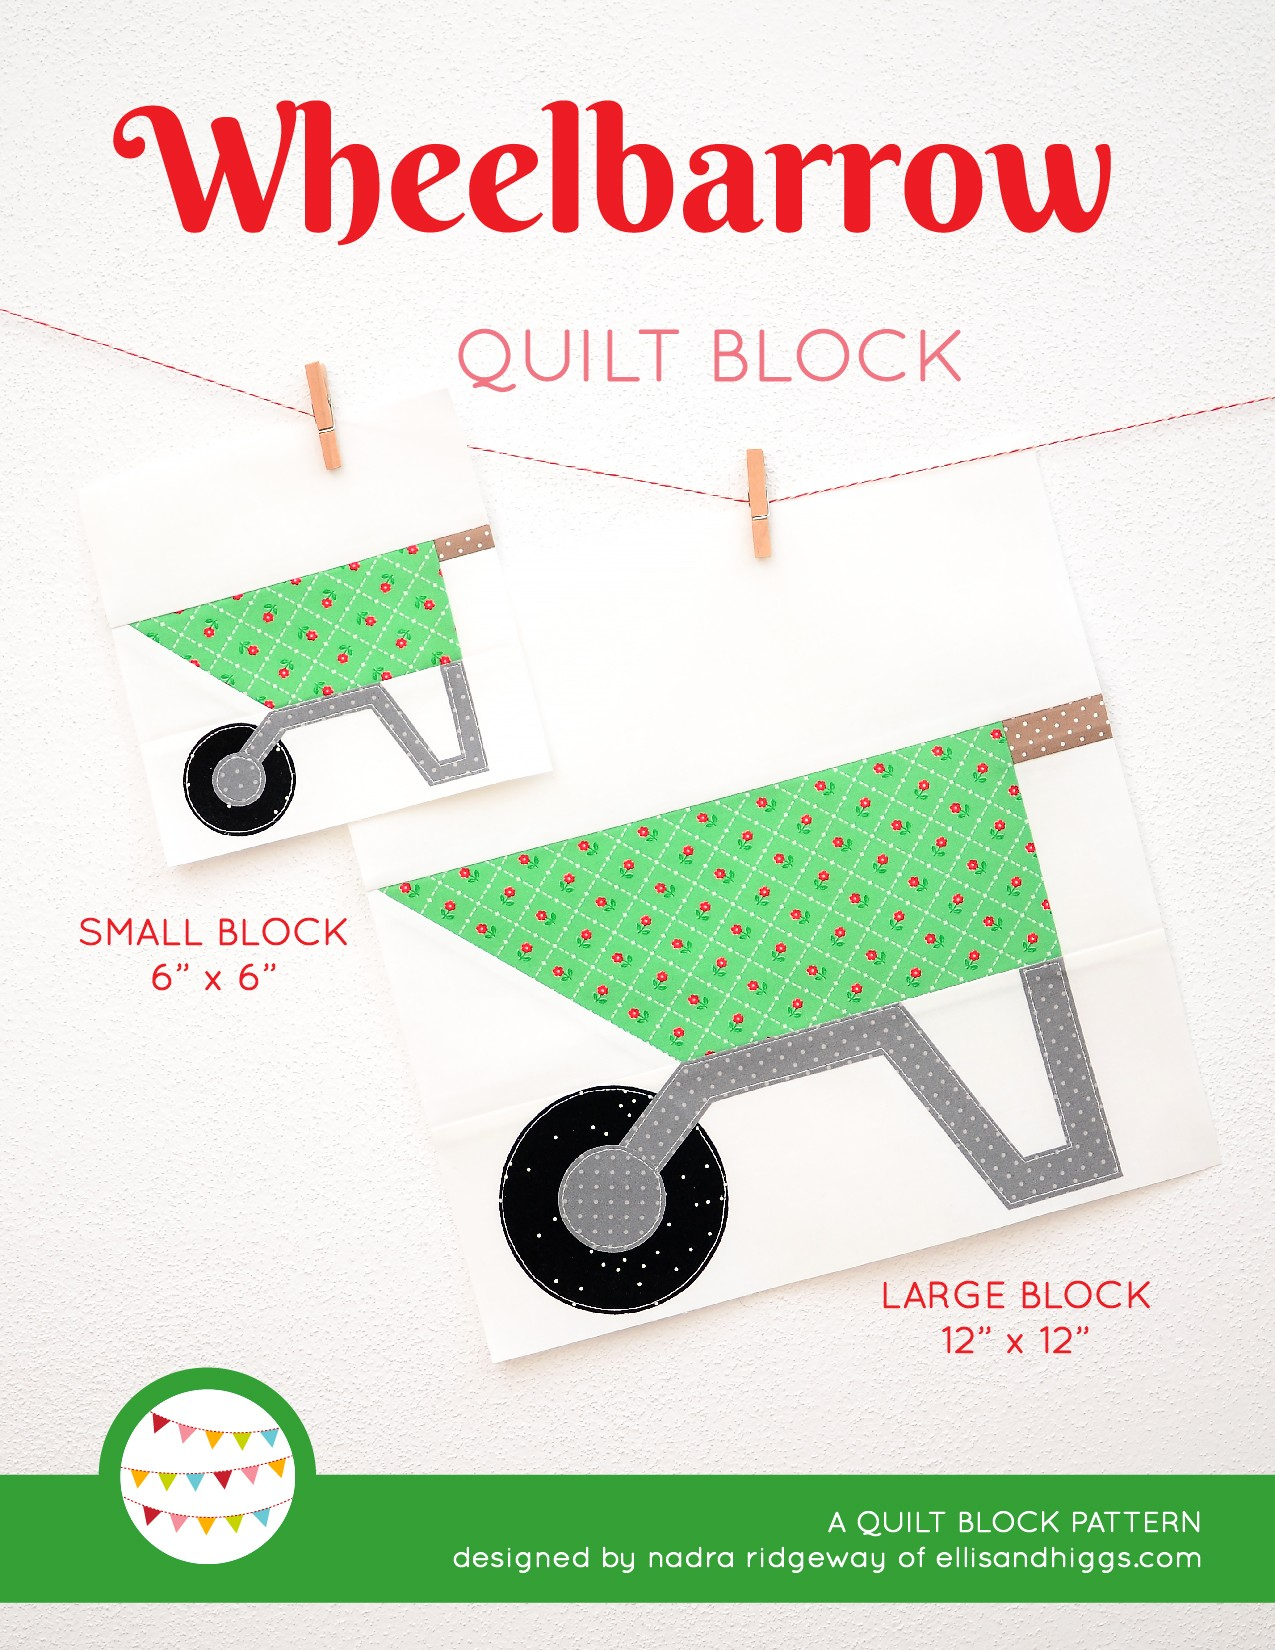 Wheelbarrow quilt blocks